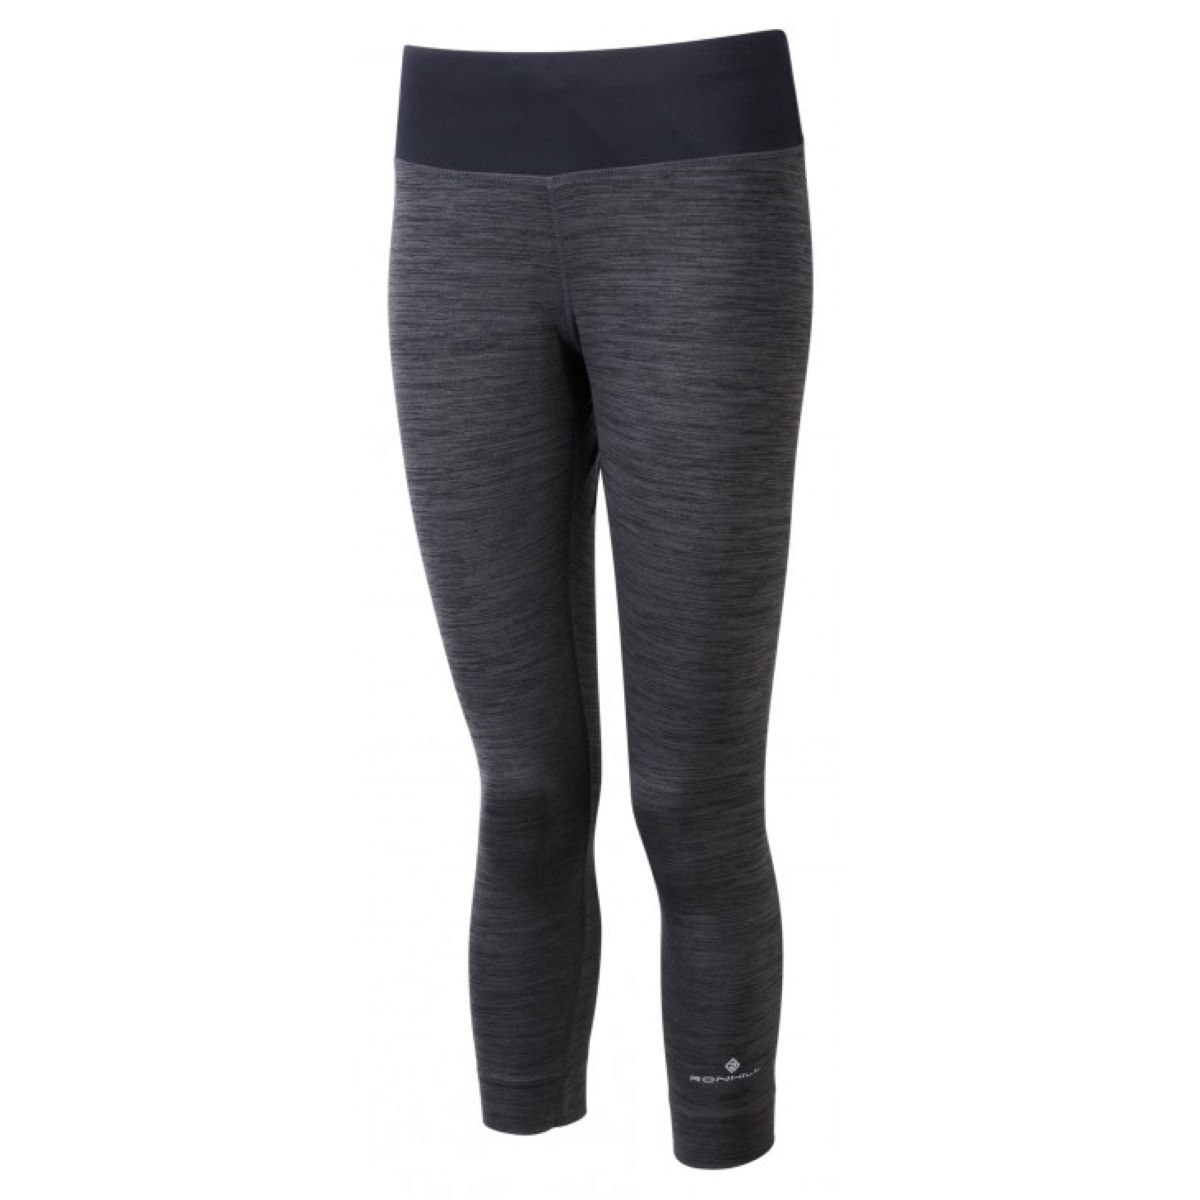 Ronhill Women's Momentum Victory Crop Tight - 14 Charcoal Marl